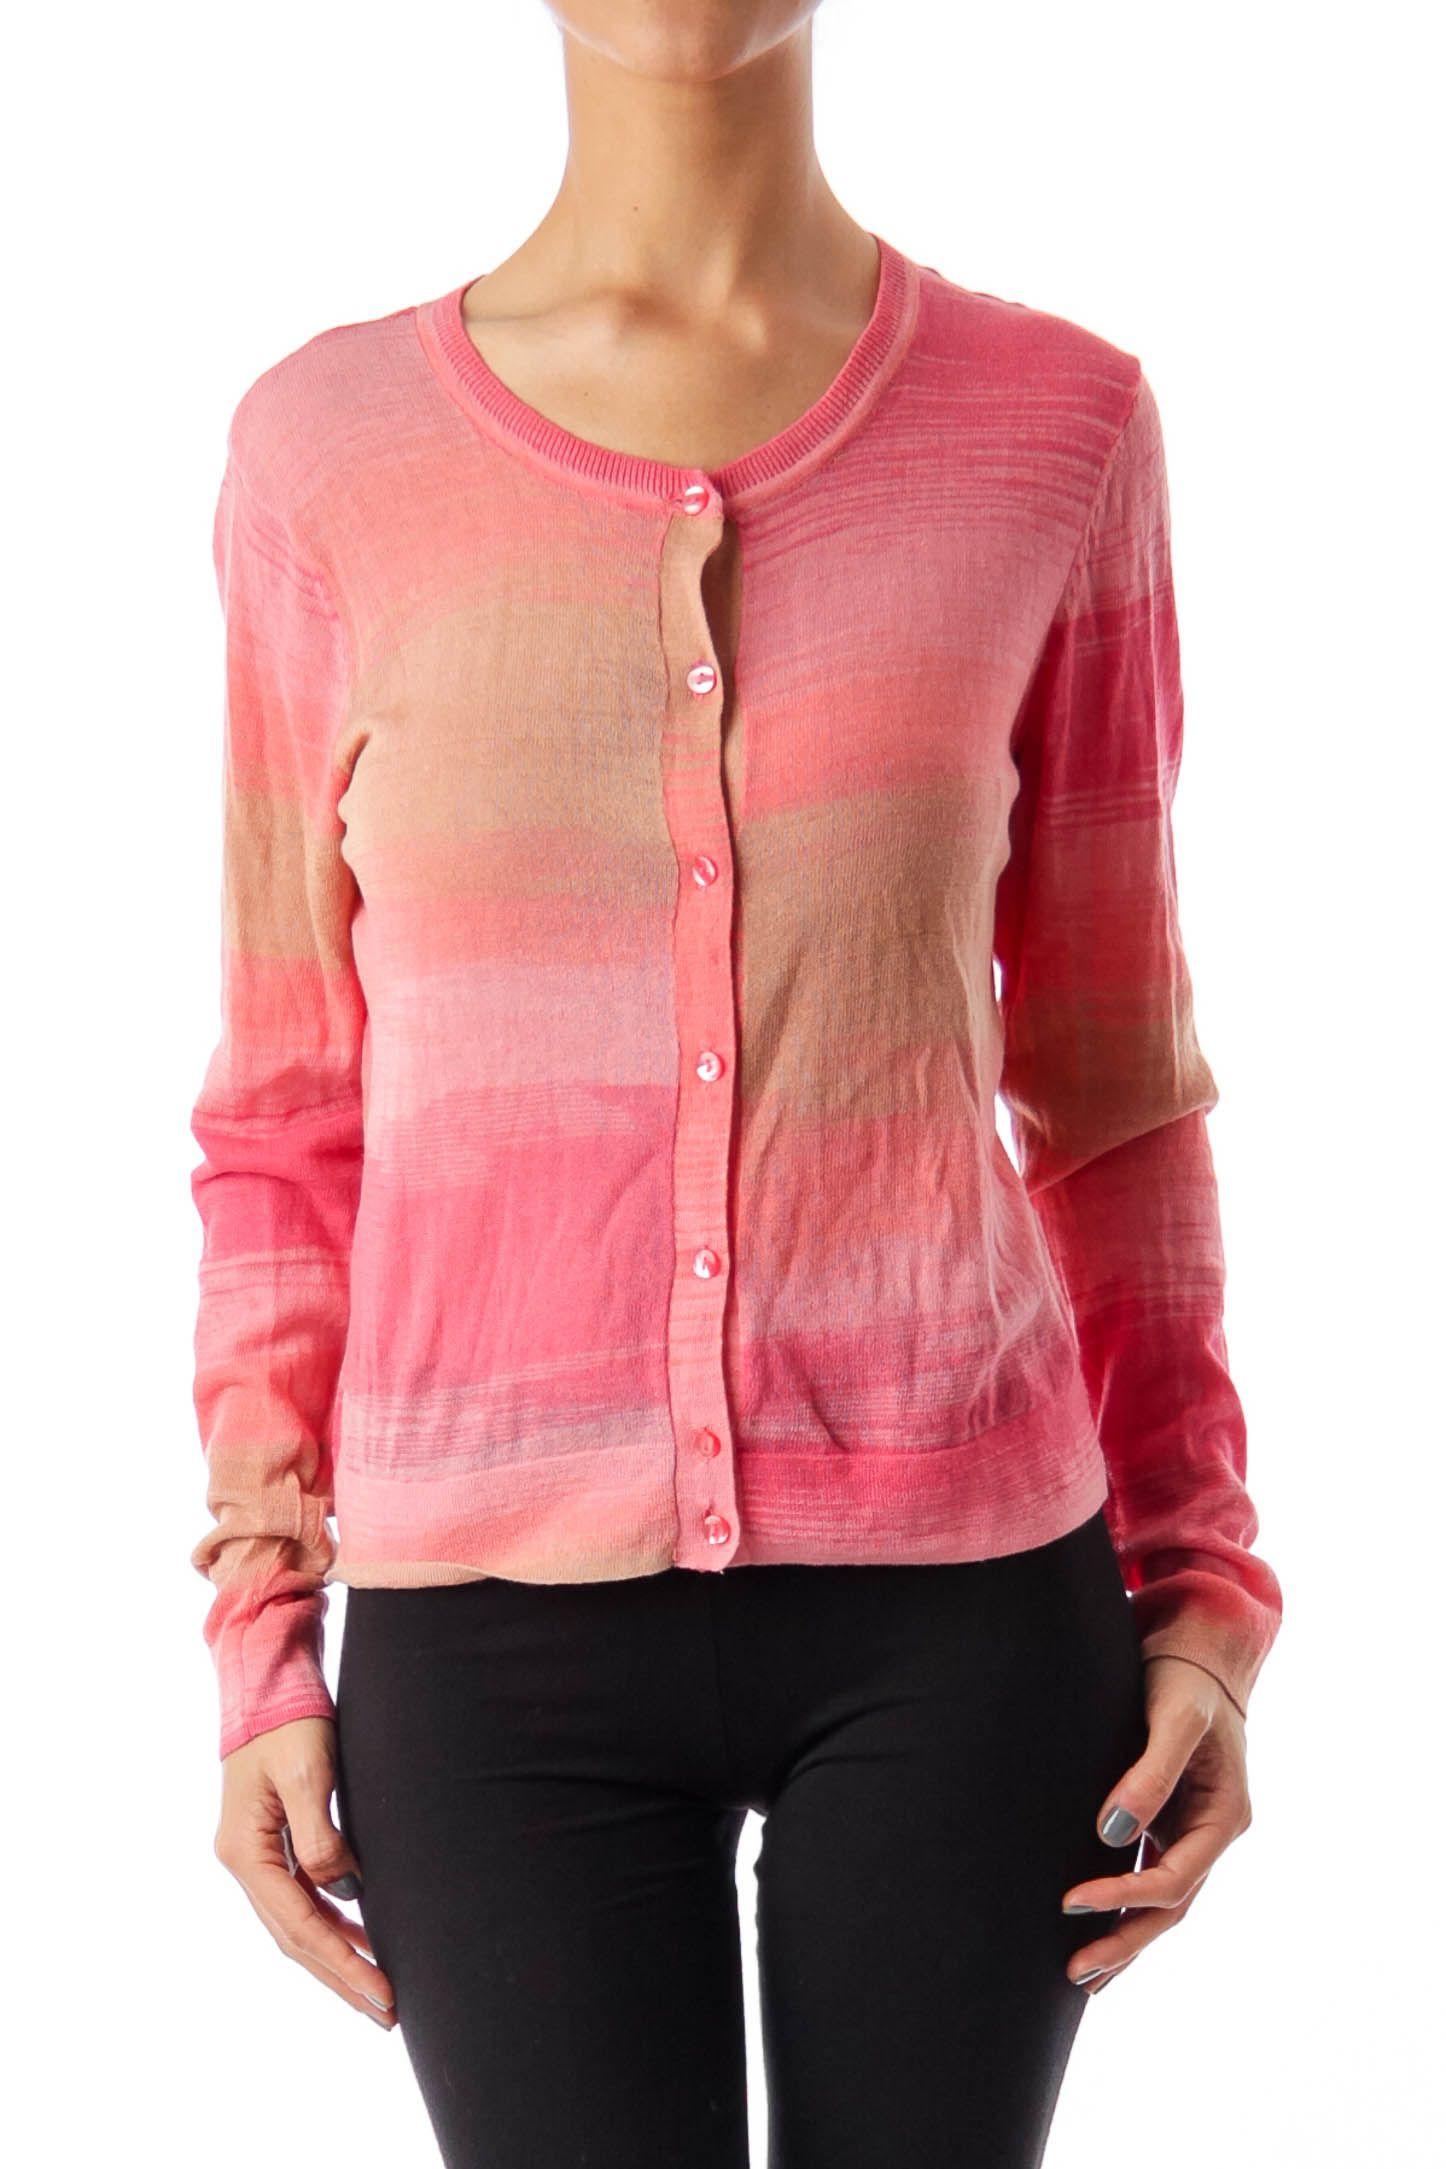 c7be4e735c07db Shop this without using money! Trade. Shop. Discover. #fashionexchange  #prelovedfashion Pink & Brown Round Neck Cardigan by Cynthia Rowley